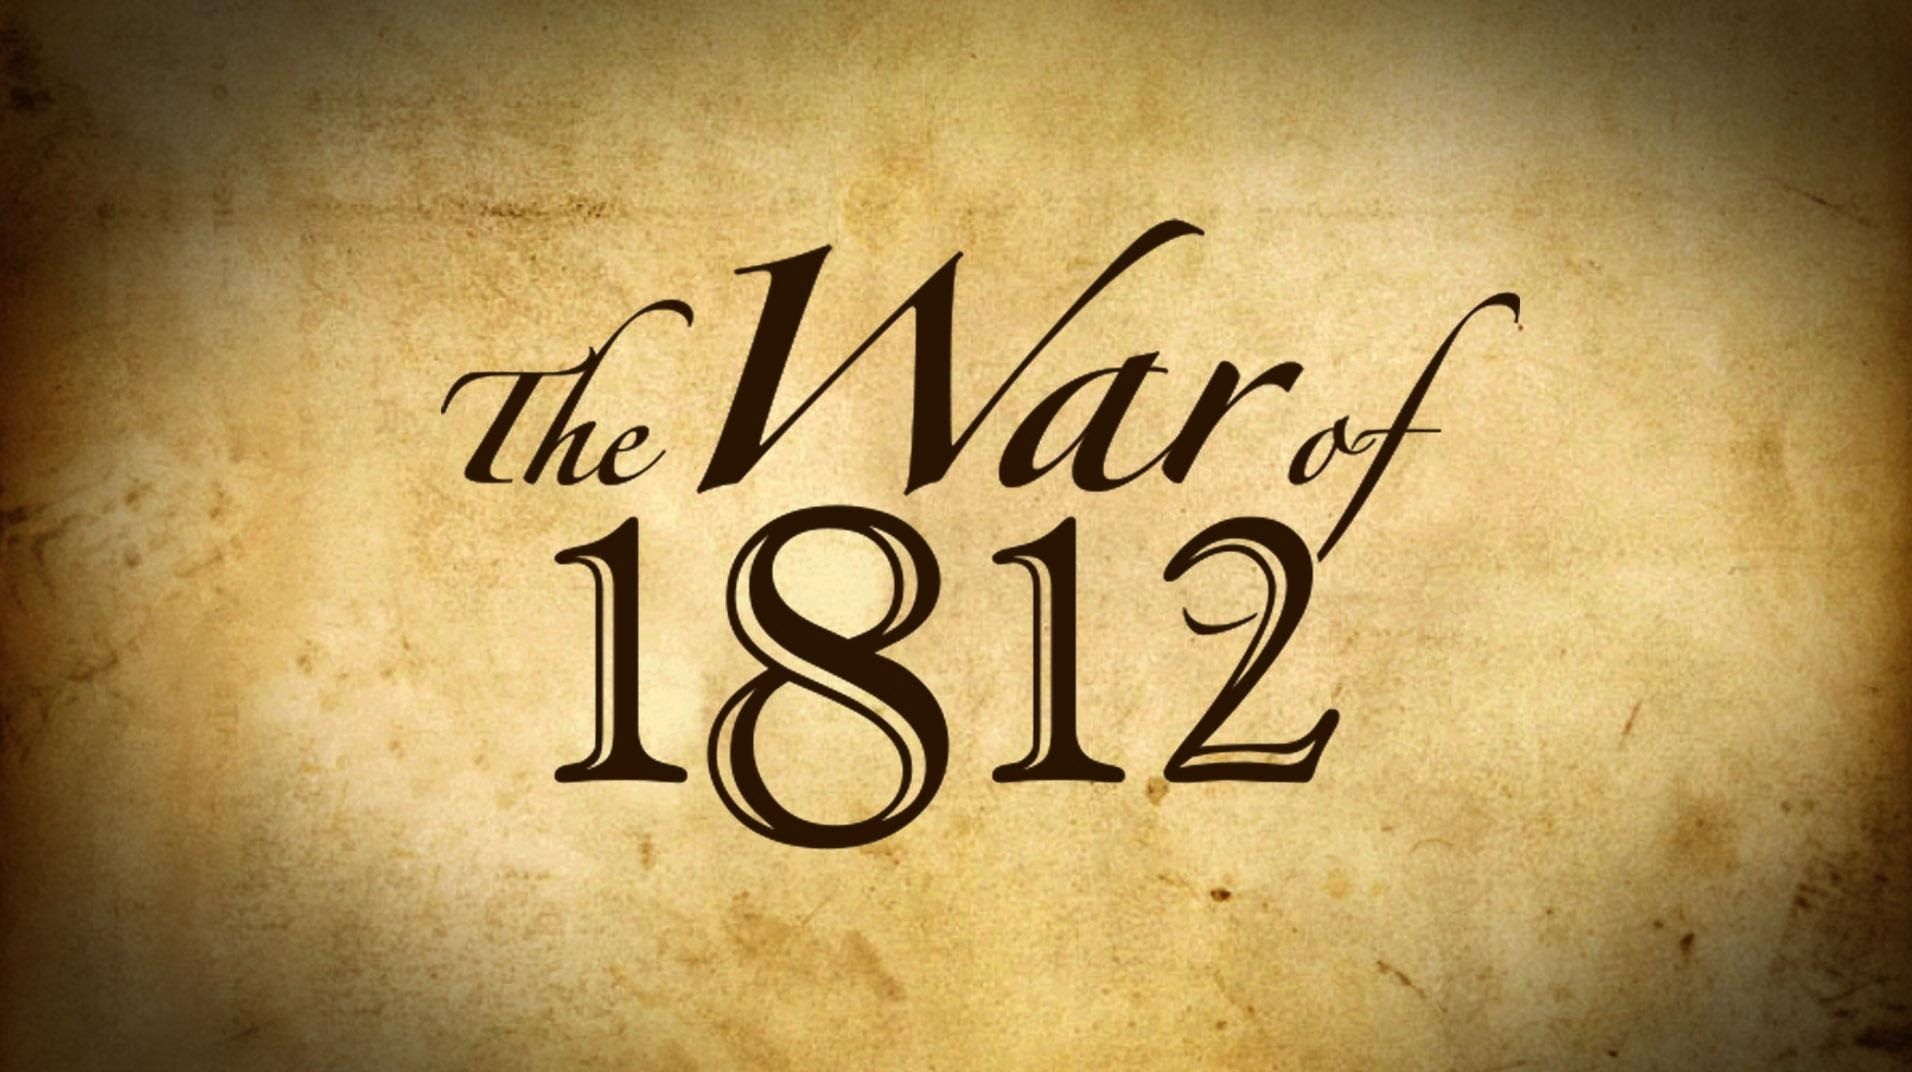 an opinion on the war of 1812 in the us Suffered many costly defeats at the hands of british, canadian and native american troops over the course of the war of 1812, including the capture and burning of the nation's capital.